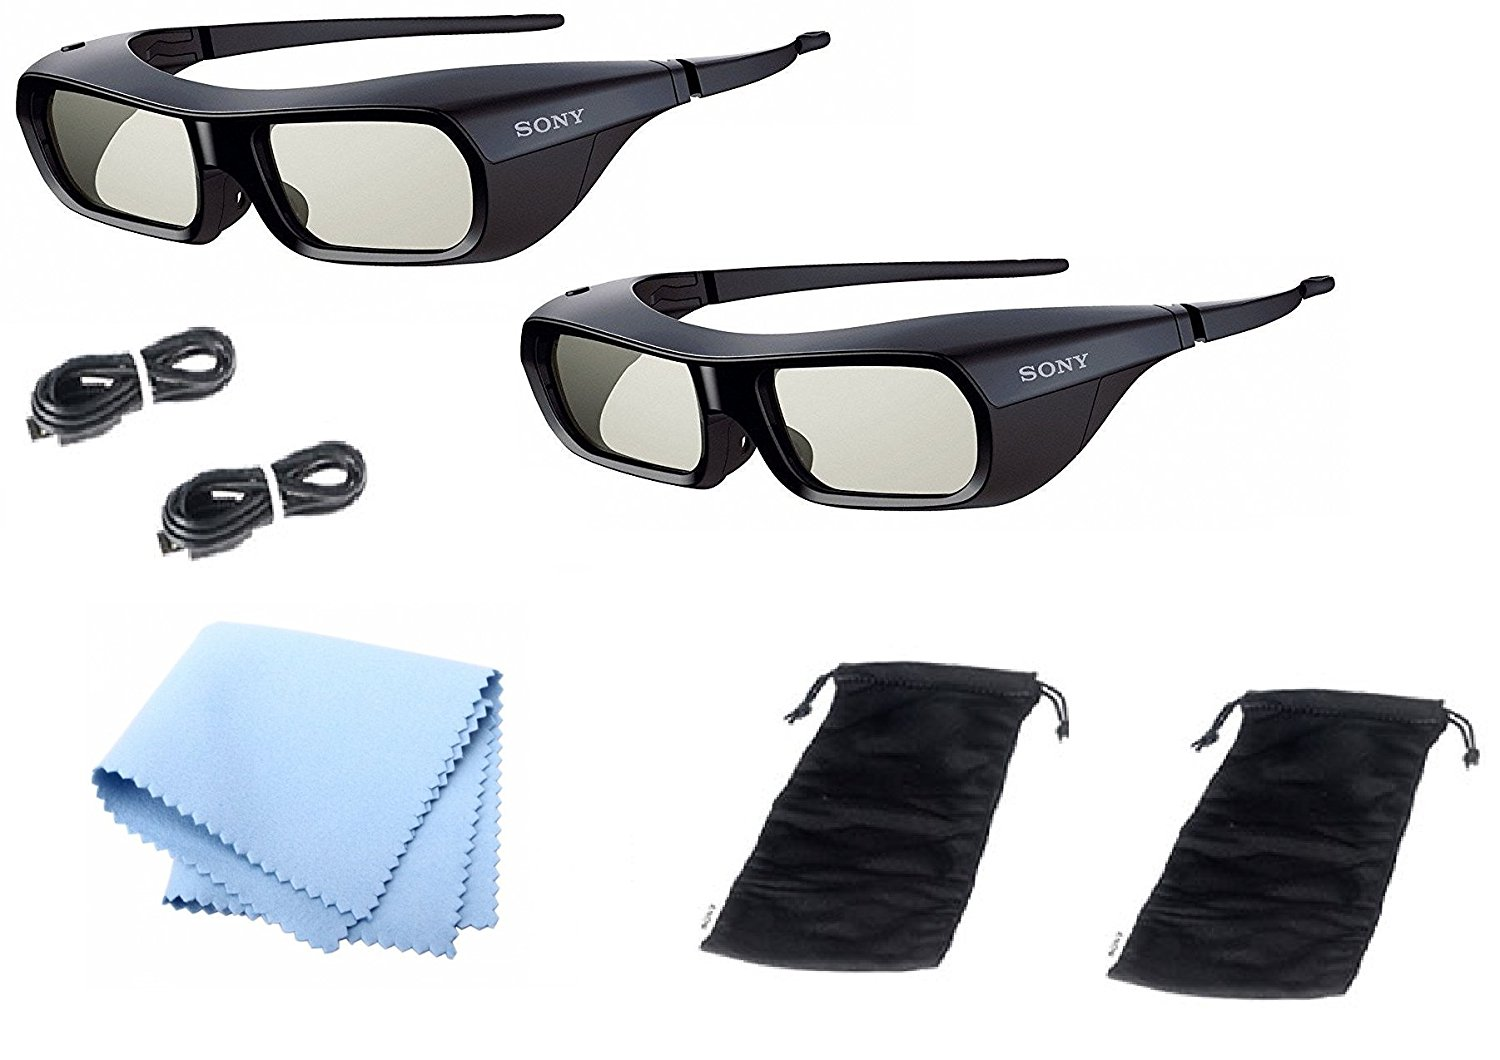 2 x Sony TDG-BR250/B Rechargeable 3D Adult Glasses, Black With Cleaning Cloth